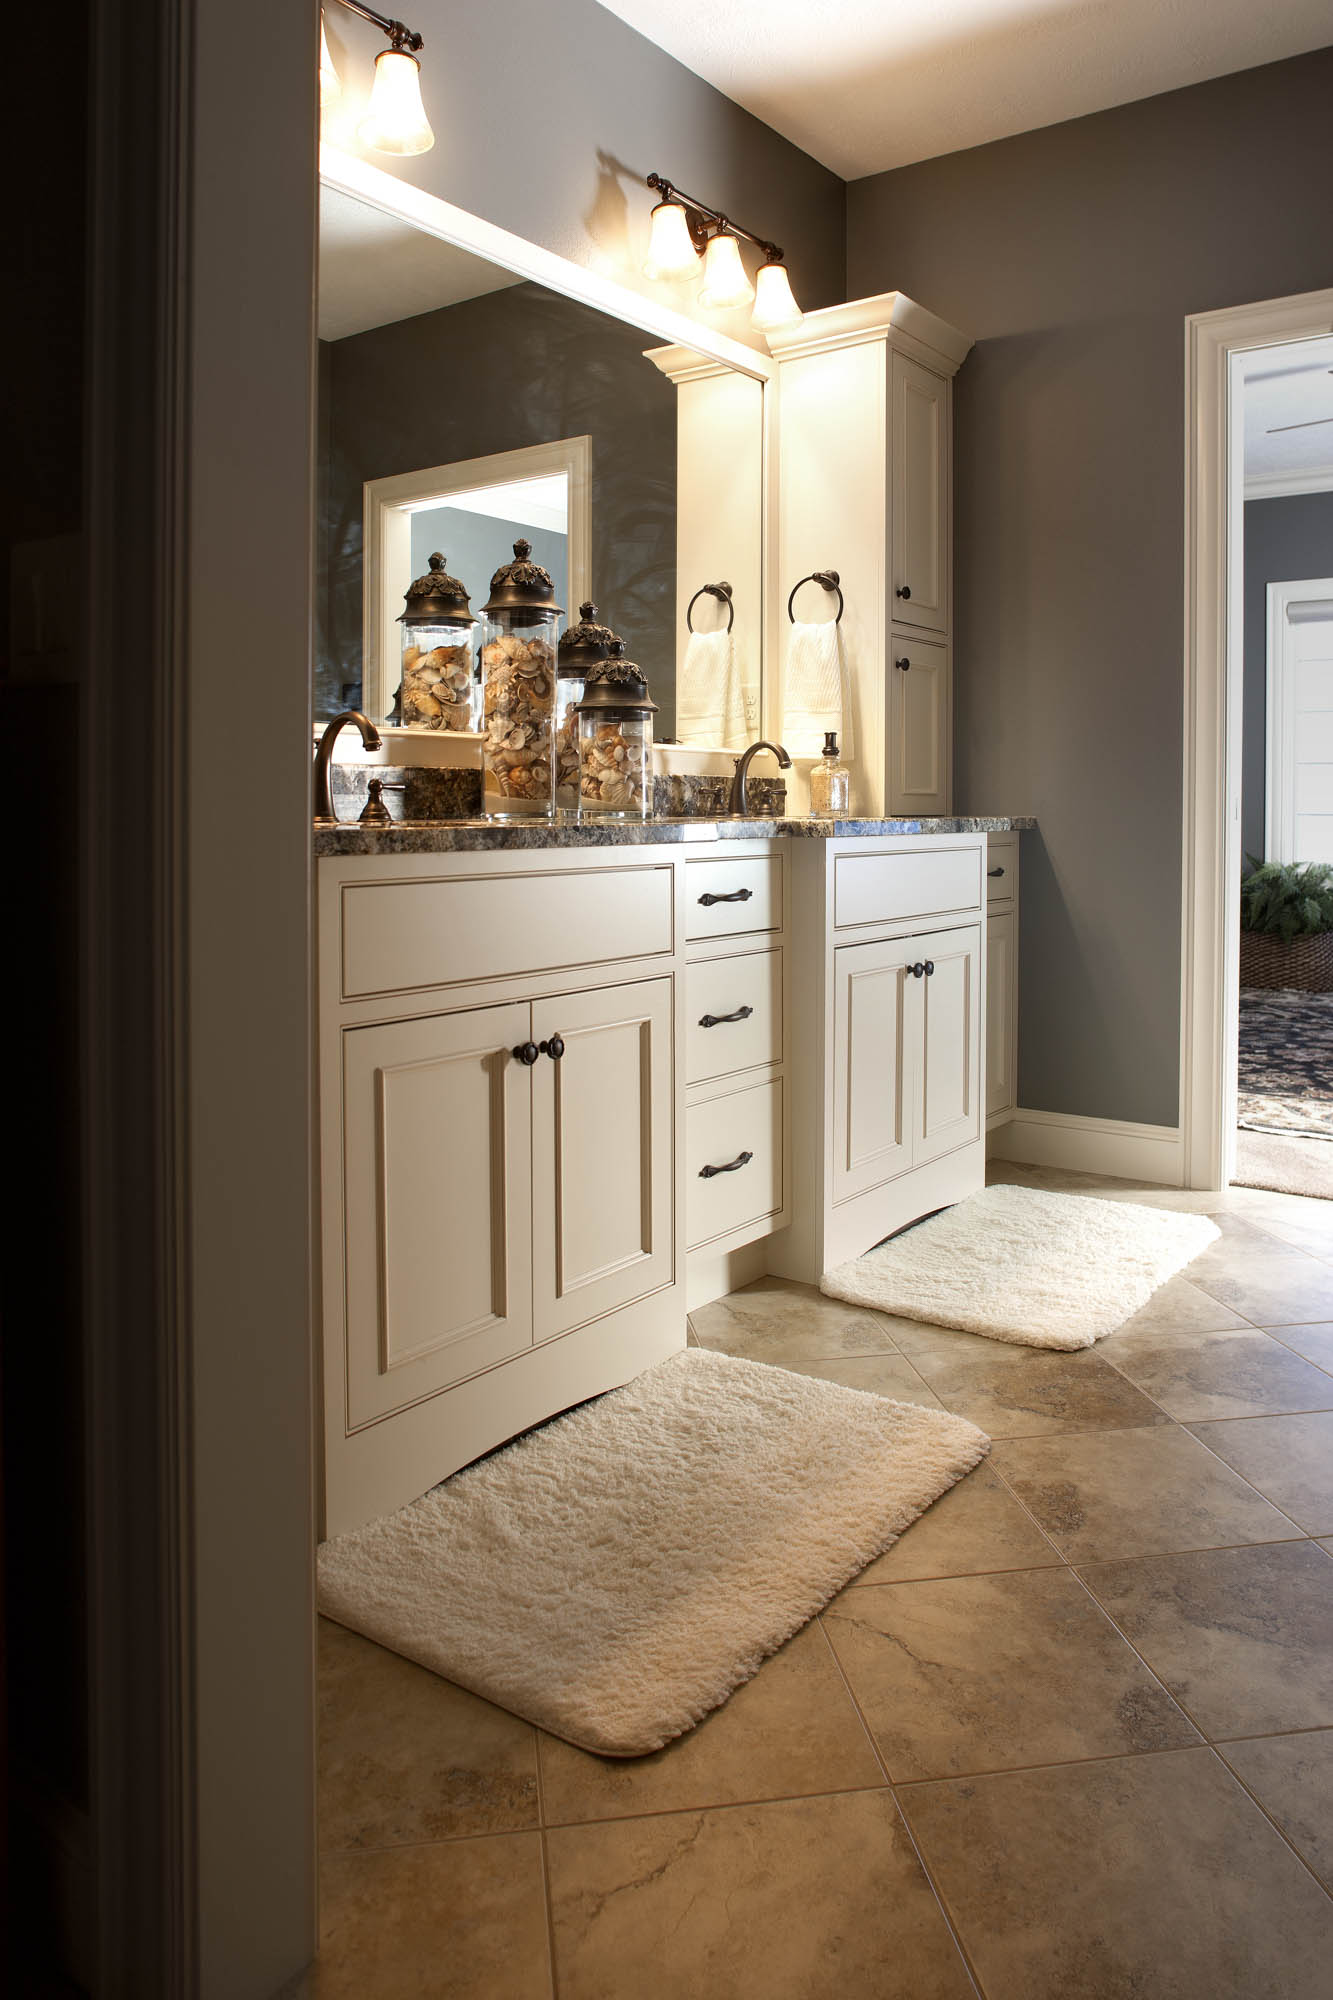 Painted master bathroom vanity in Soft Cream with Oatmeal Glaze by Showplace Cabinetry - view 1